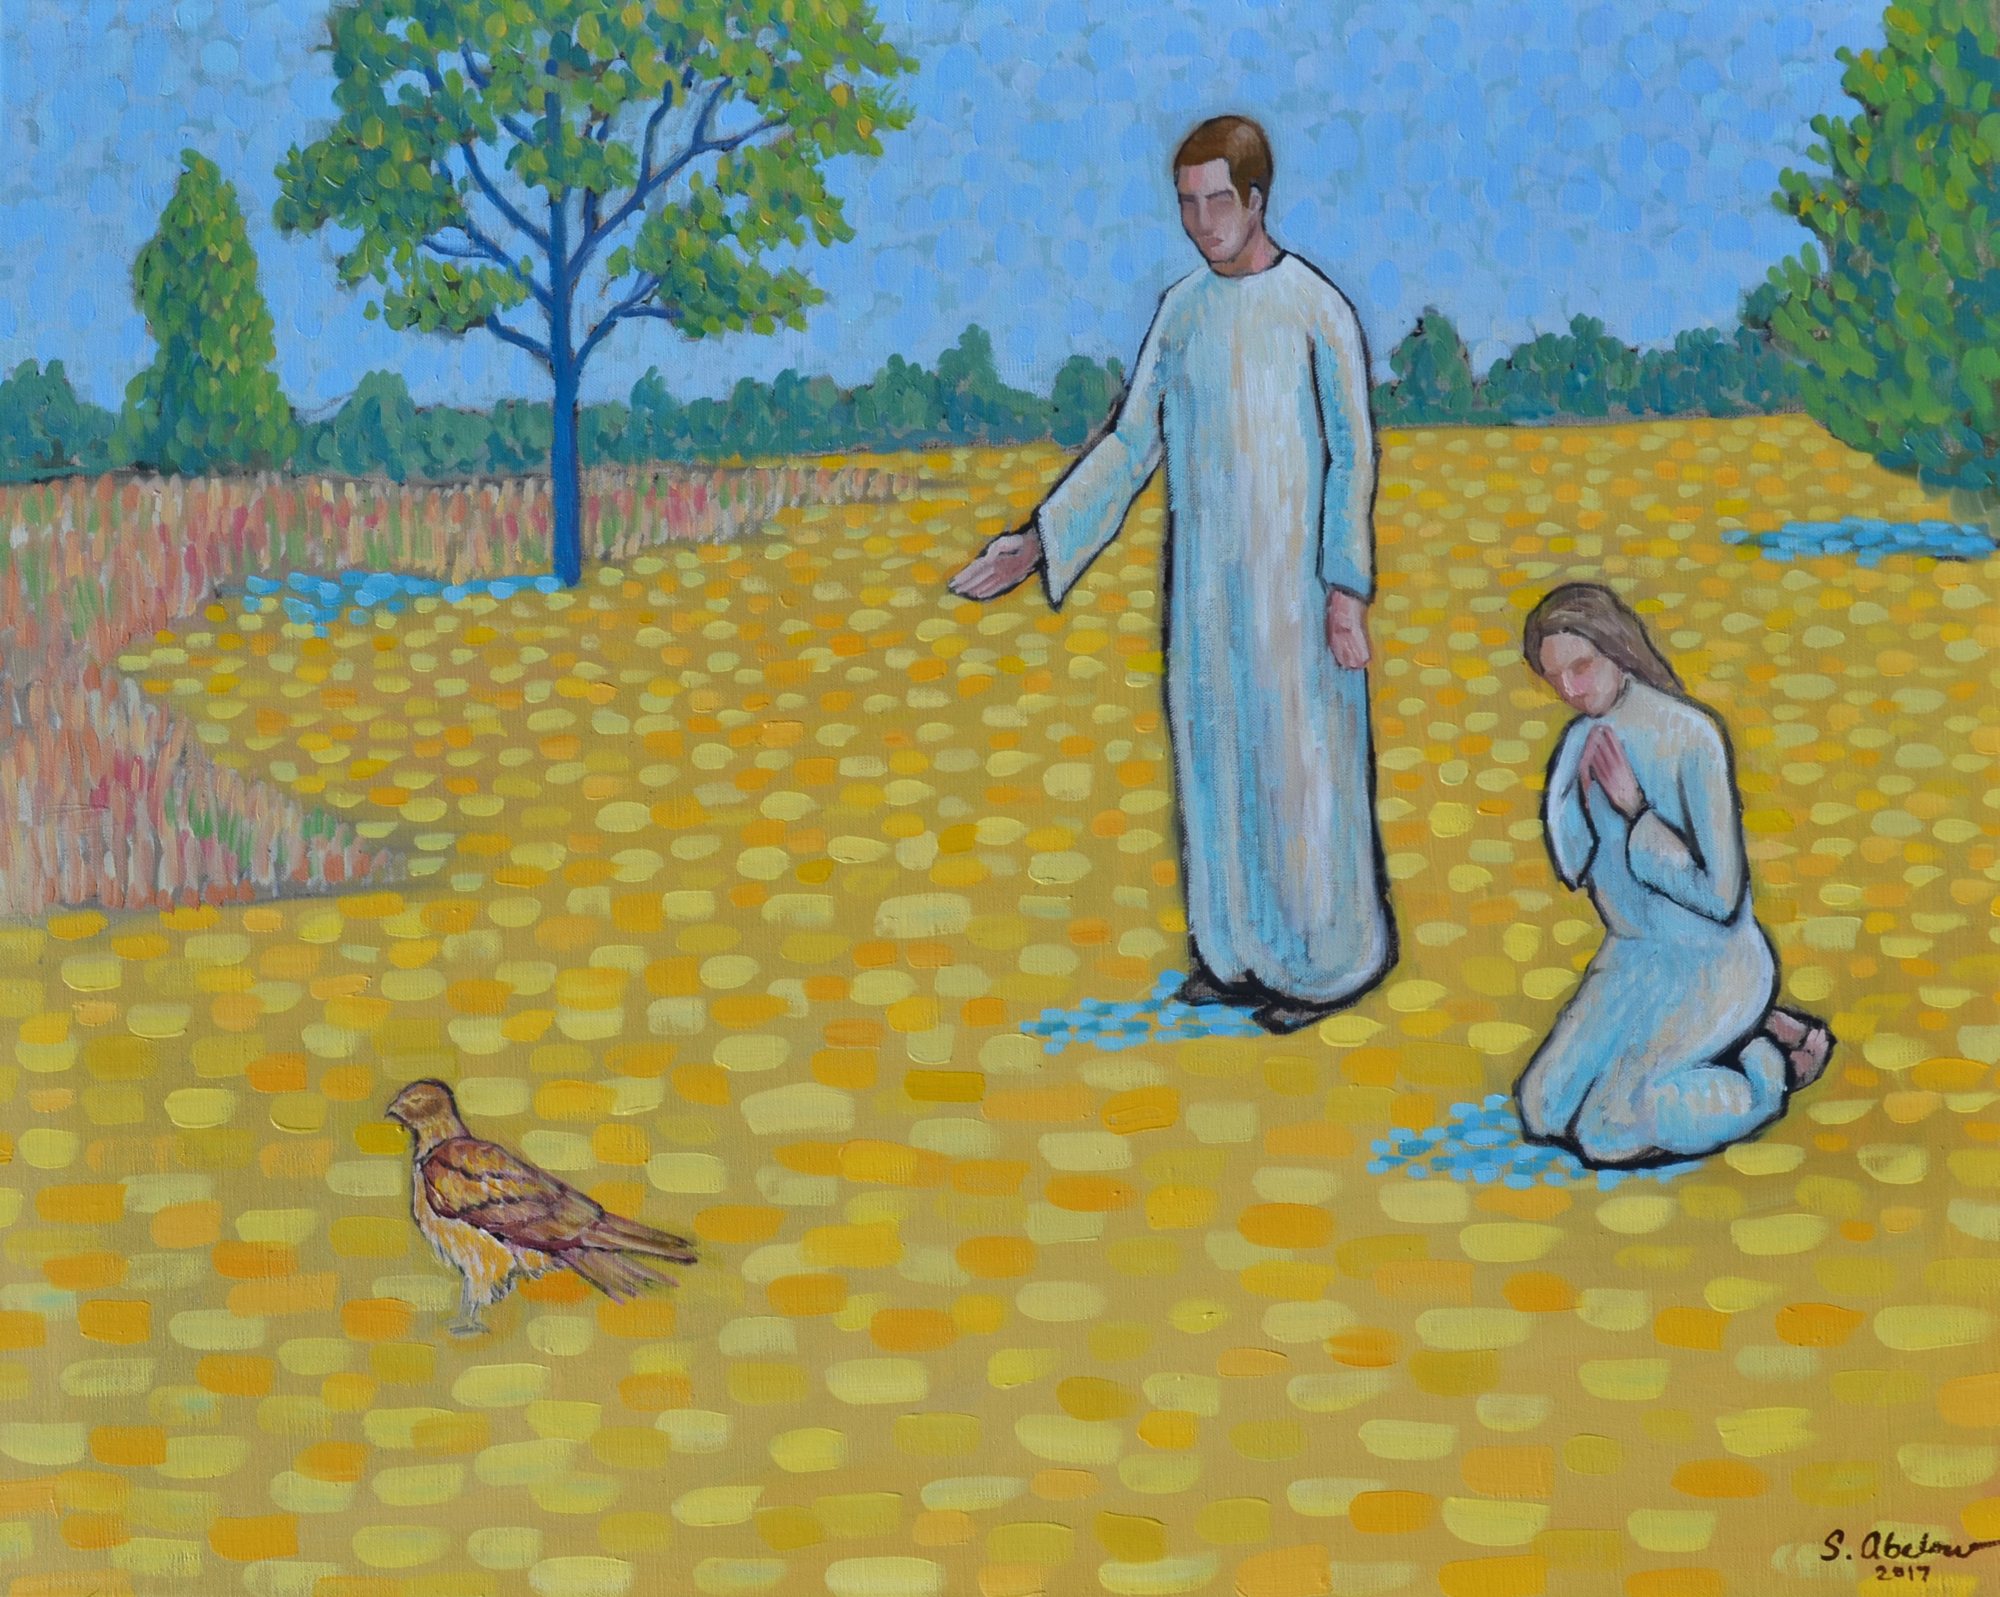 """""""Pastoral Scene: Encounter With a Hawk"""" - Oil paint on linen canvas, 24x30 inches"""